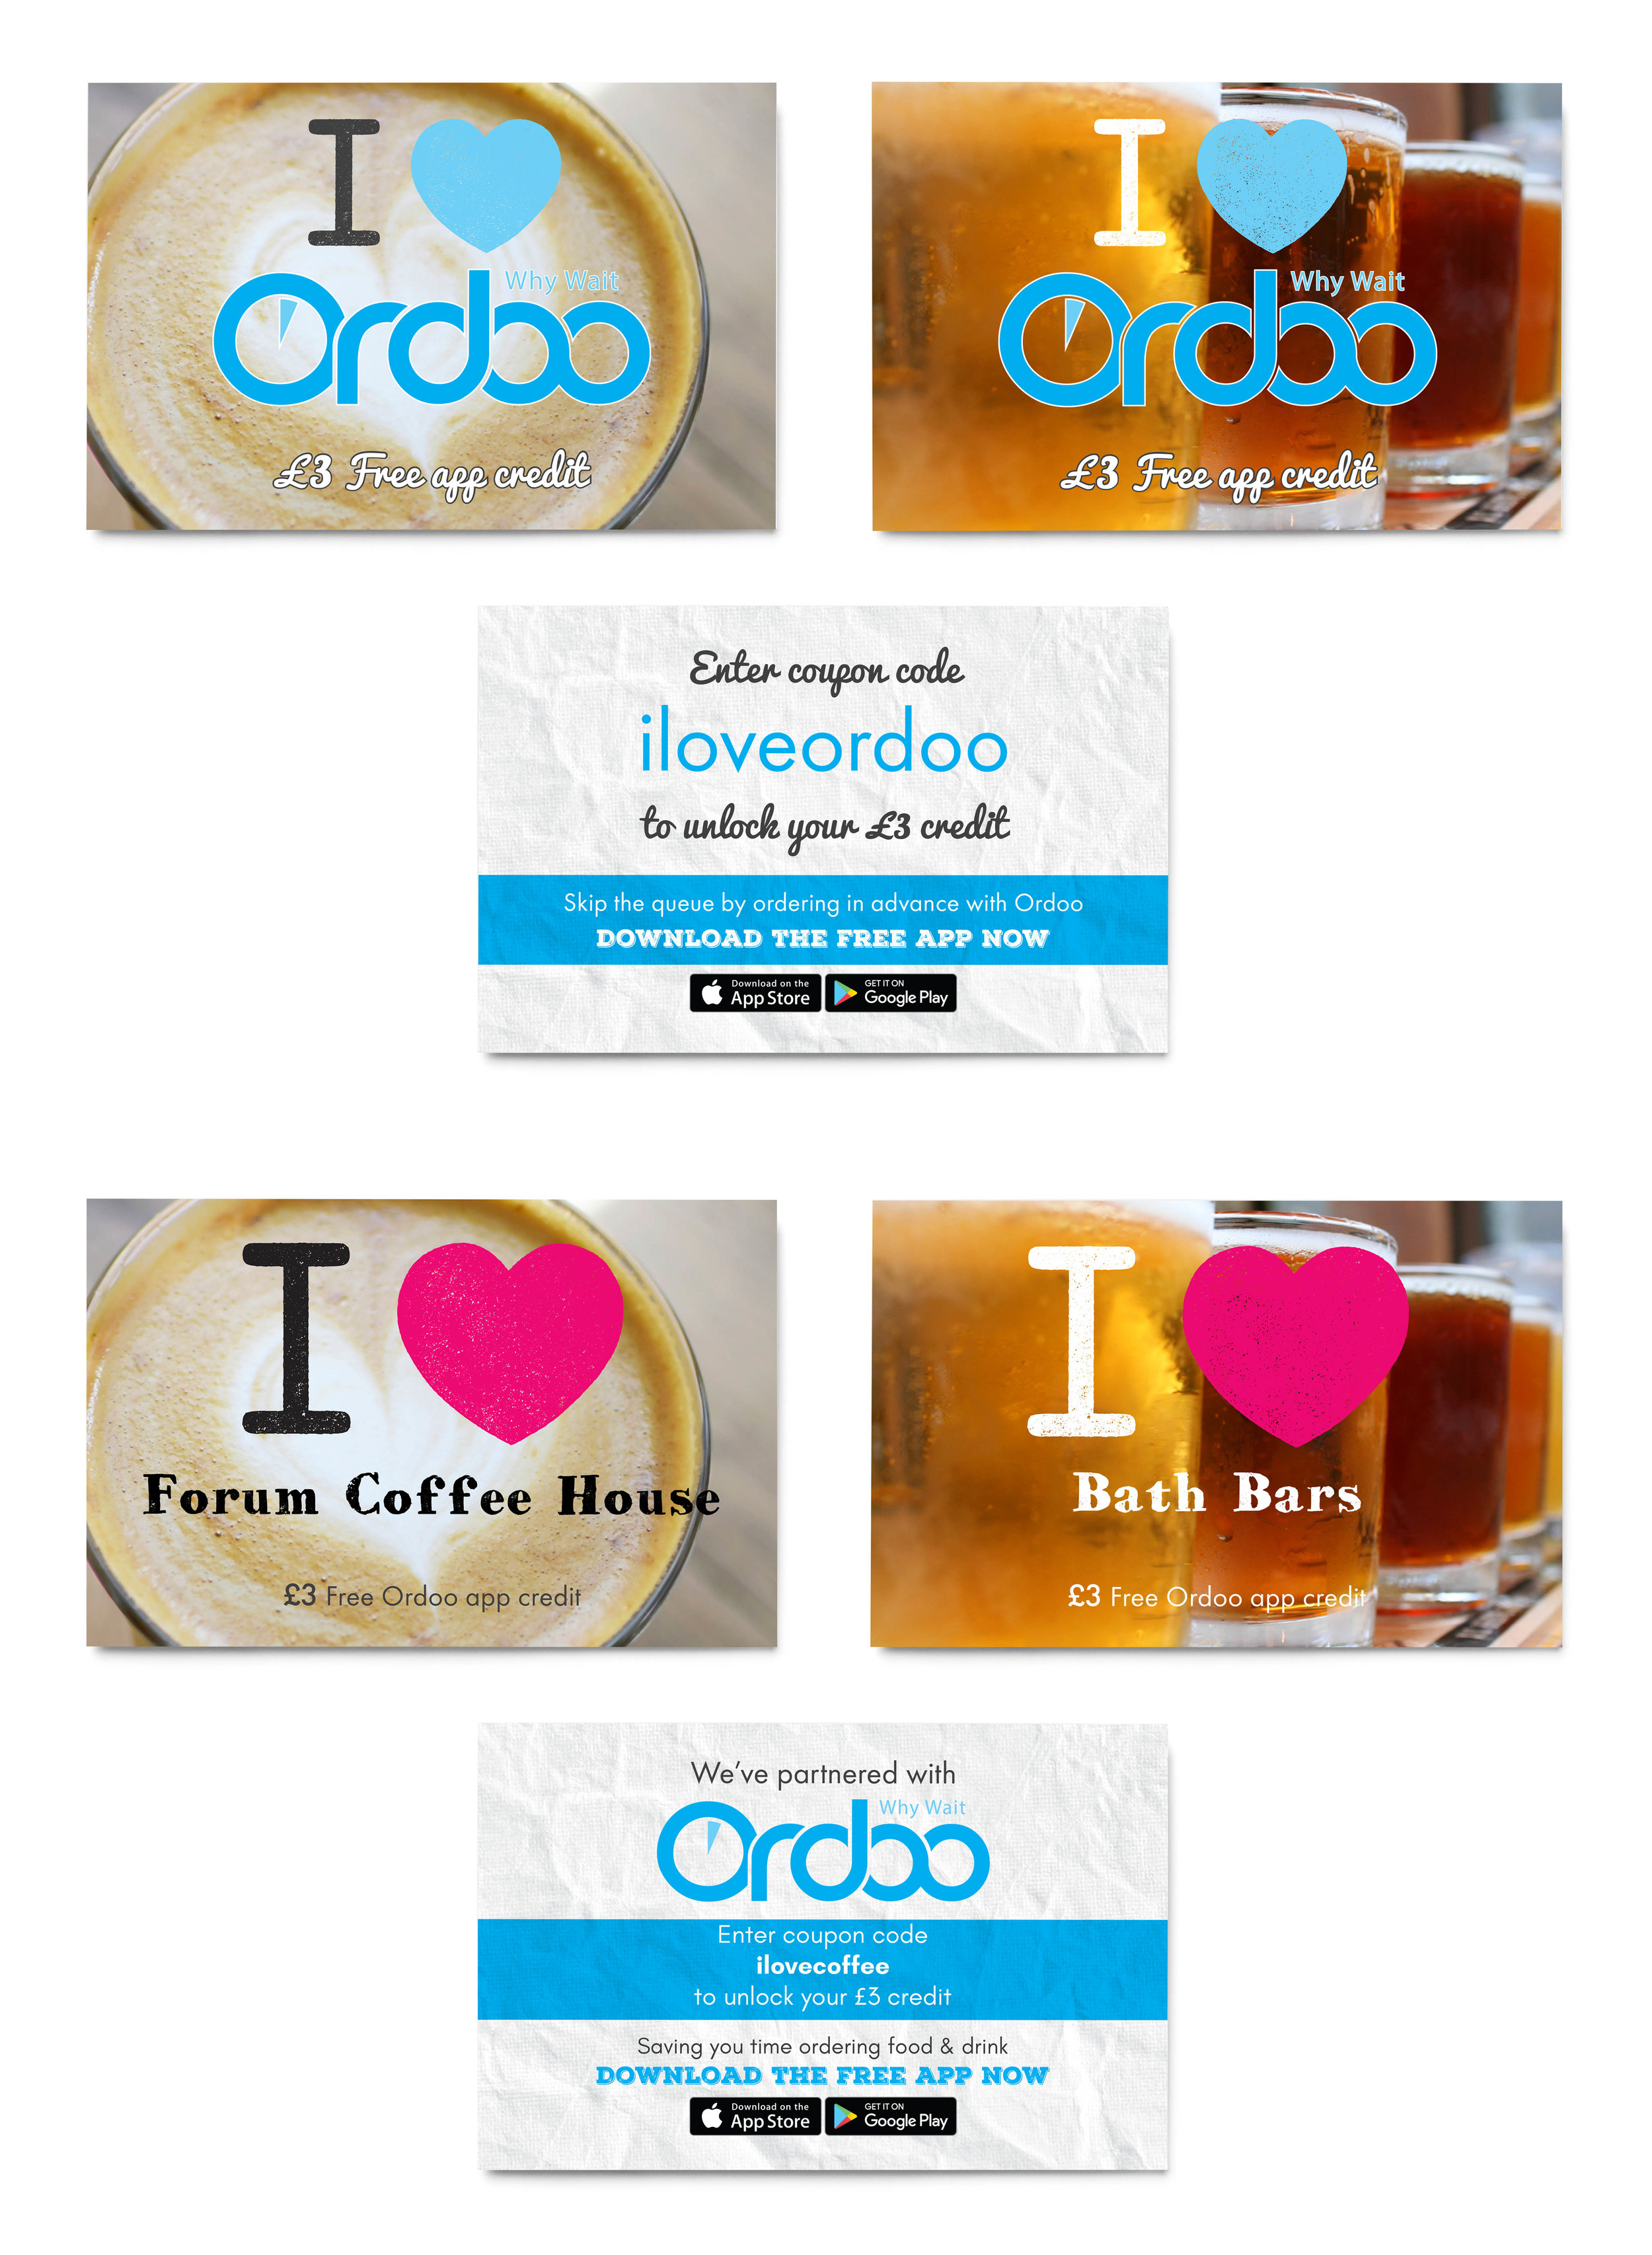 promotional business cards   versatile designs for in venues and marketing campaigns  editable pdf design for team use